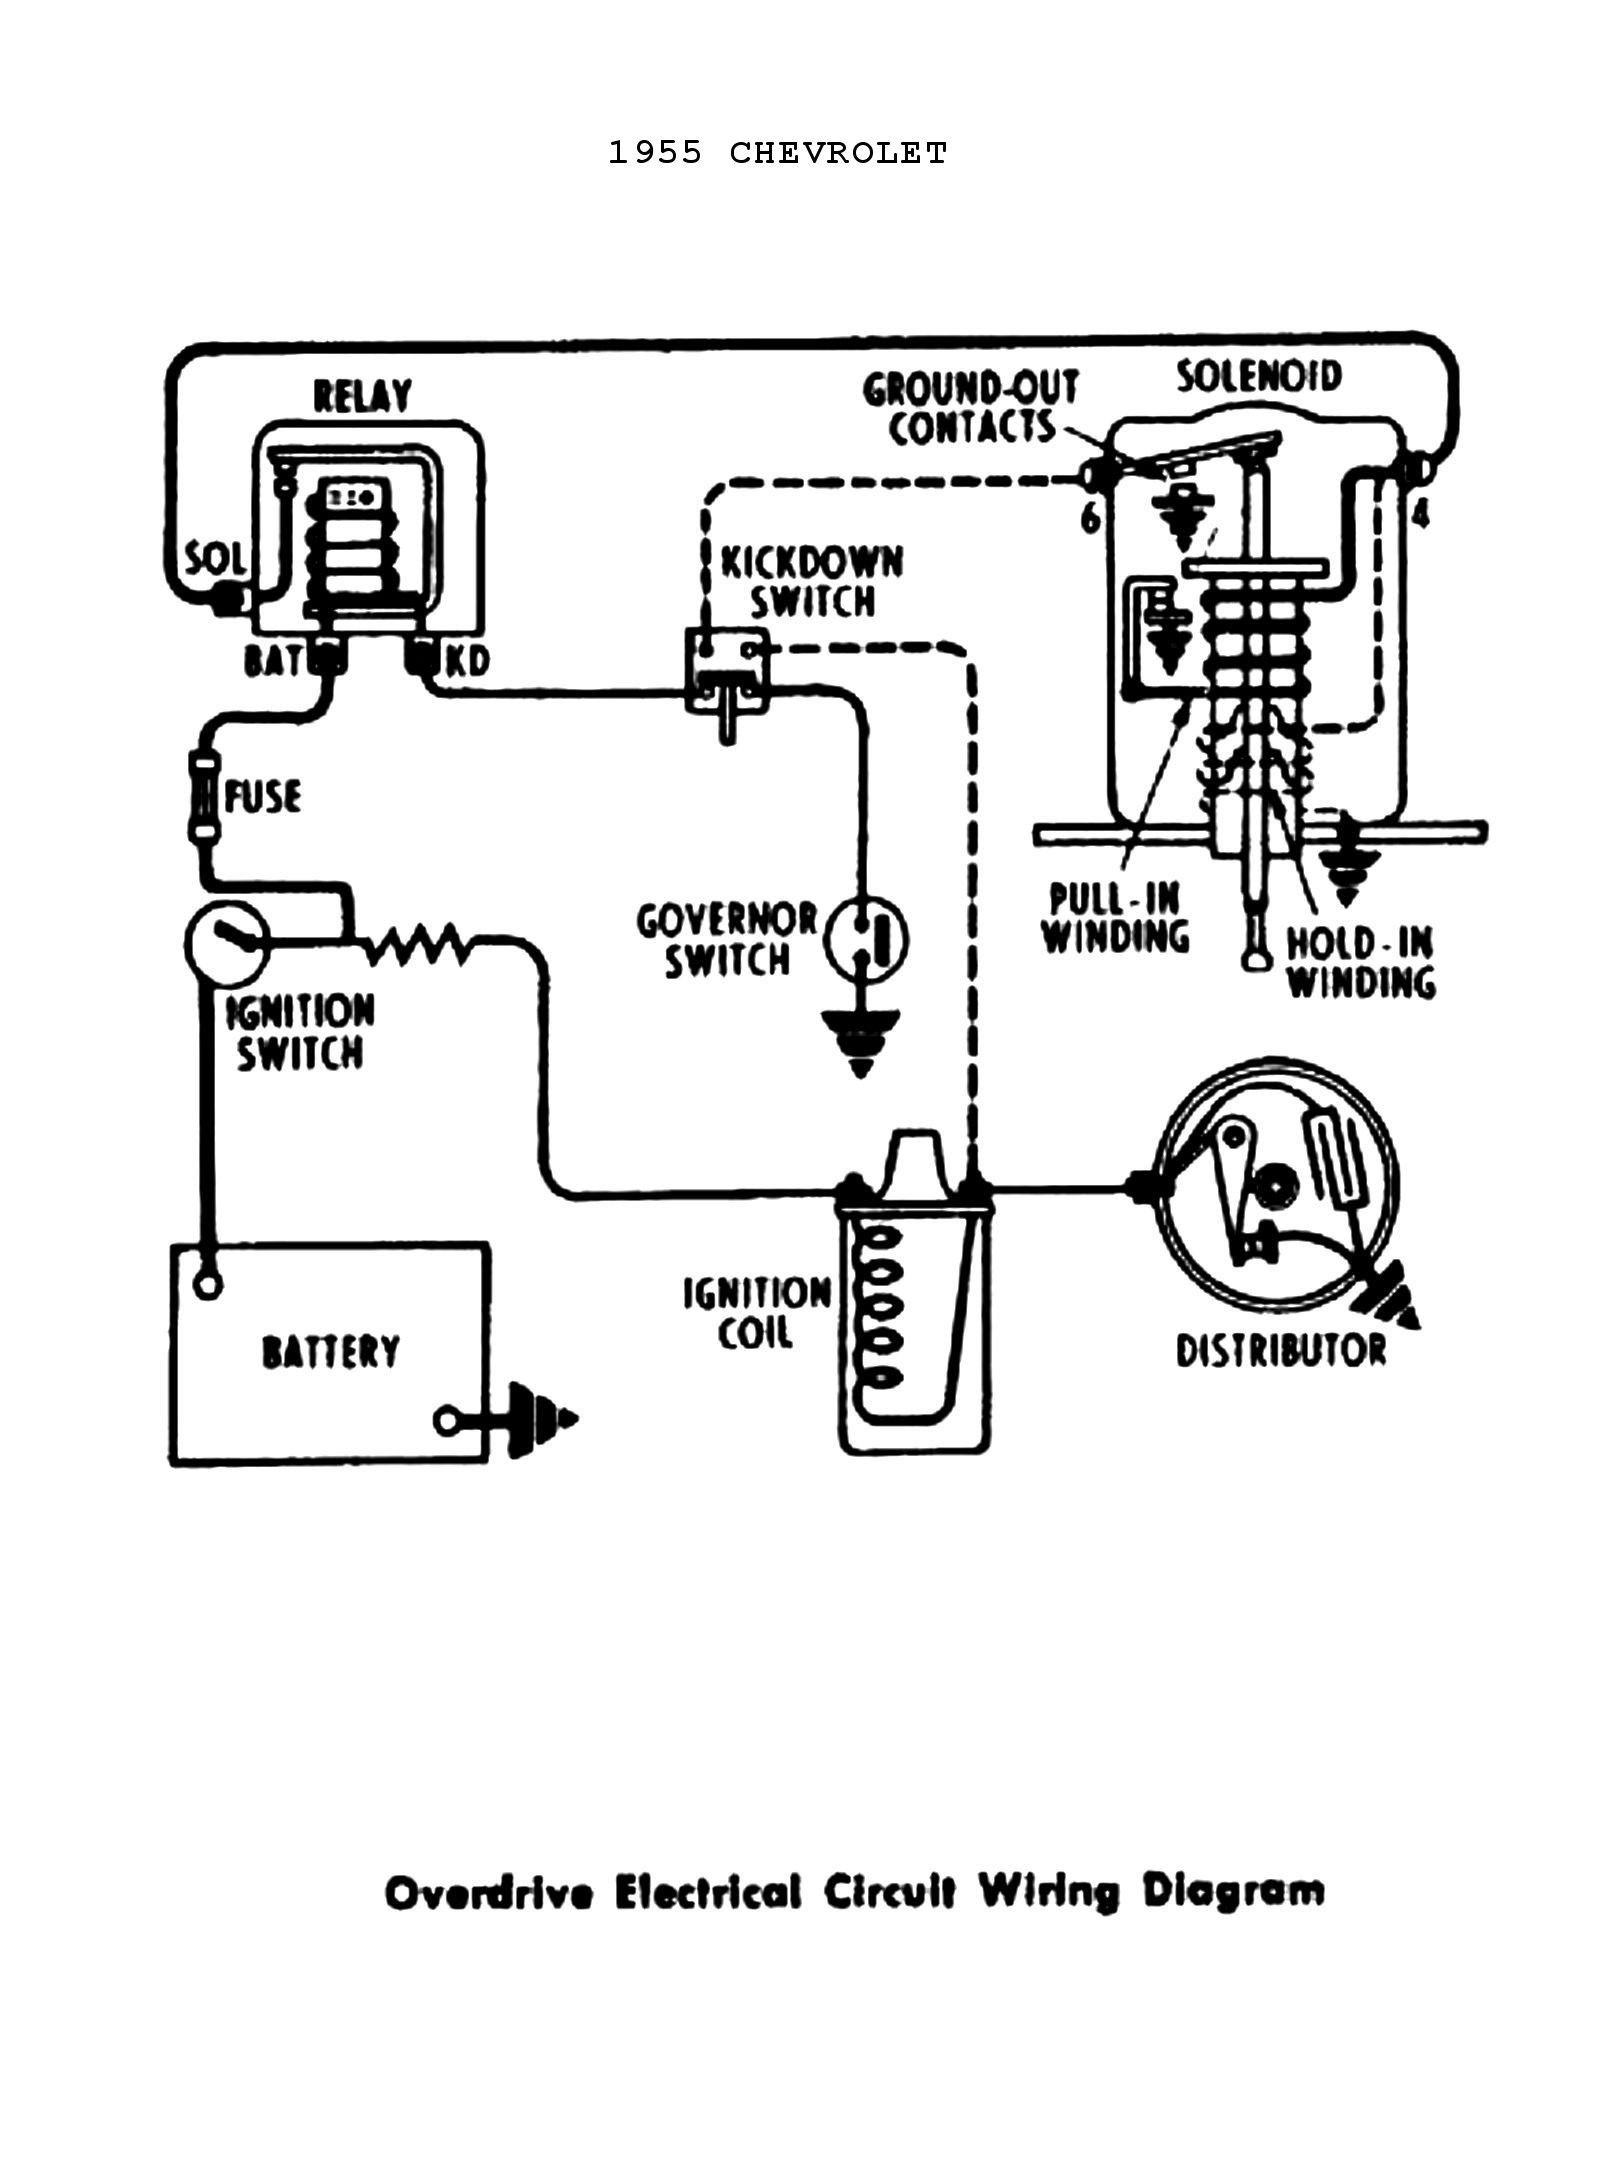 gm hei wiring diagram electrical diagrams forum u2022 rh jimmellon co uk